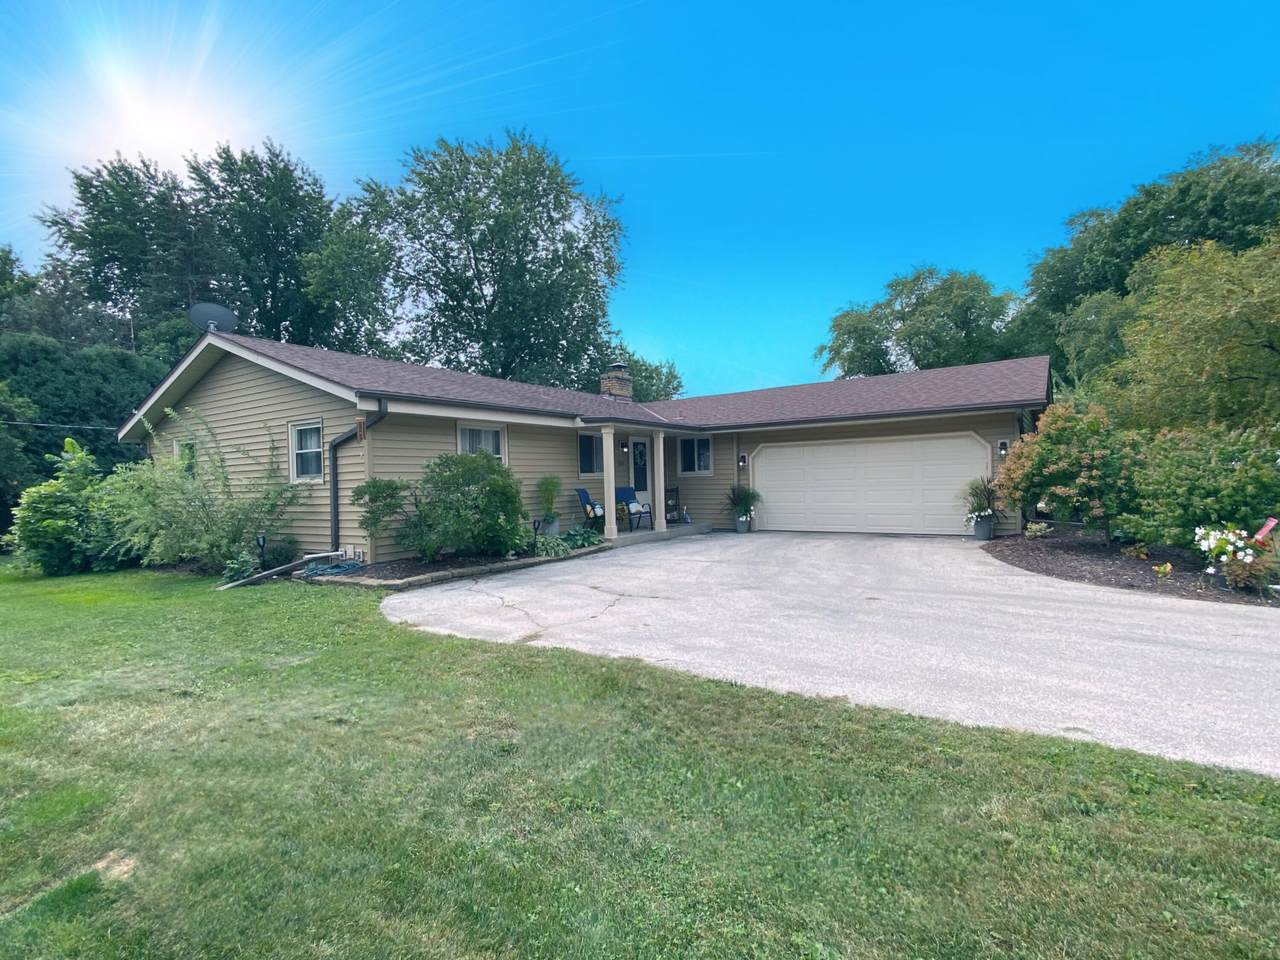 1111 Green Valley Dr - Photo 1